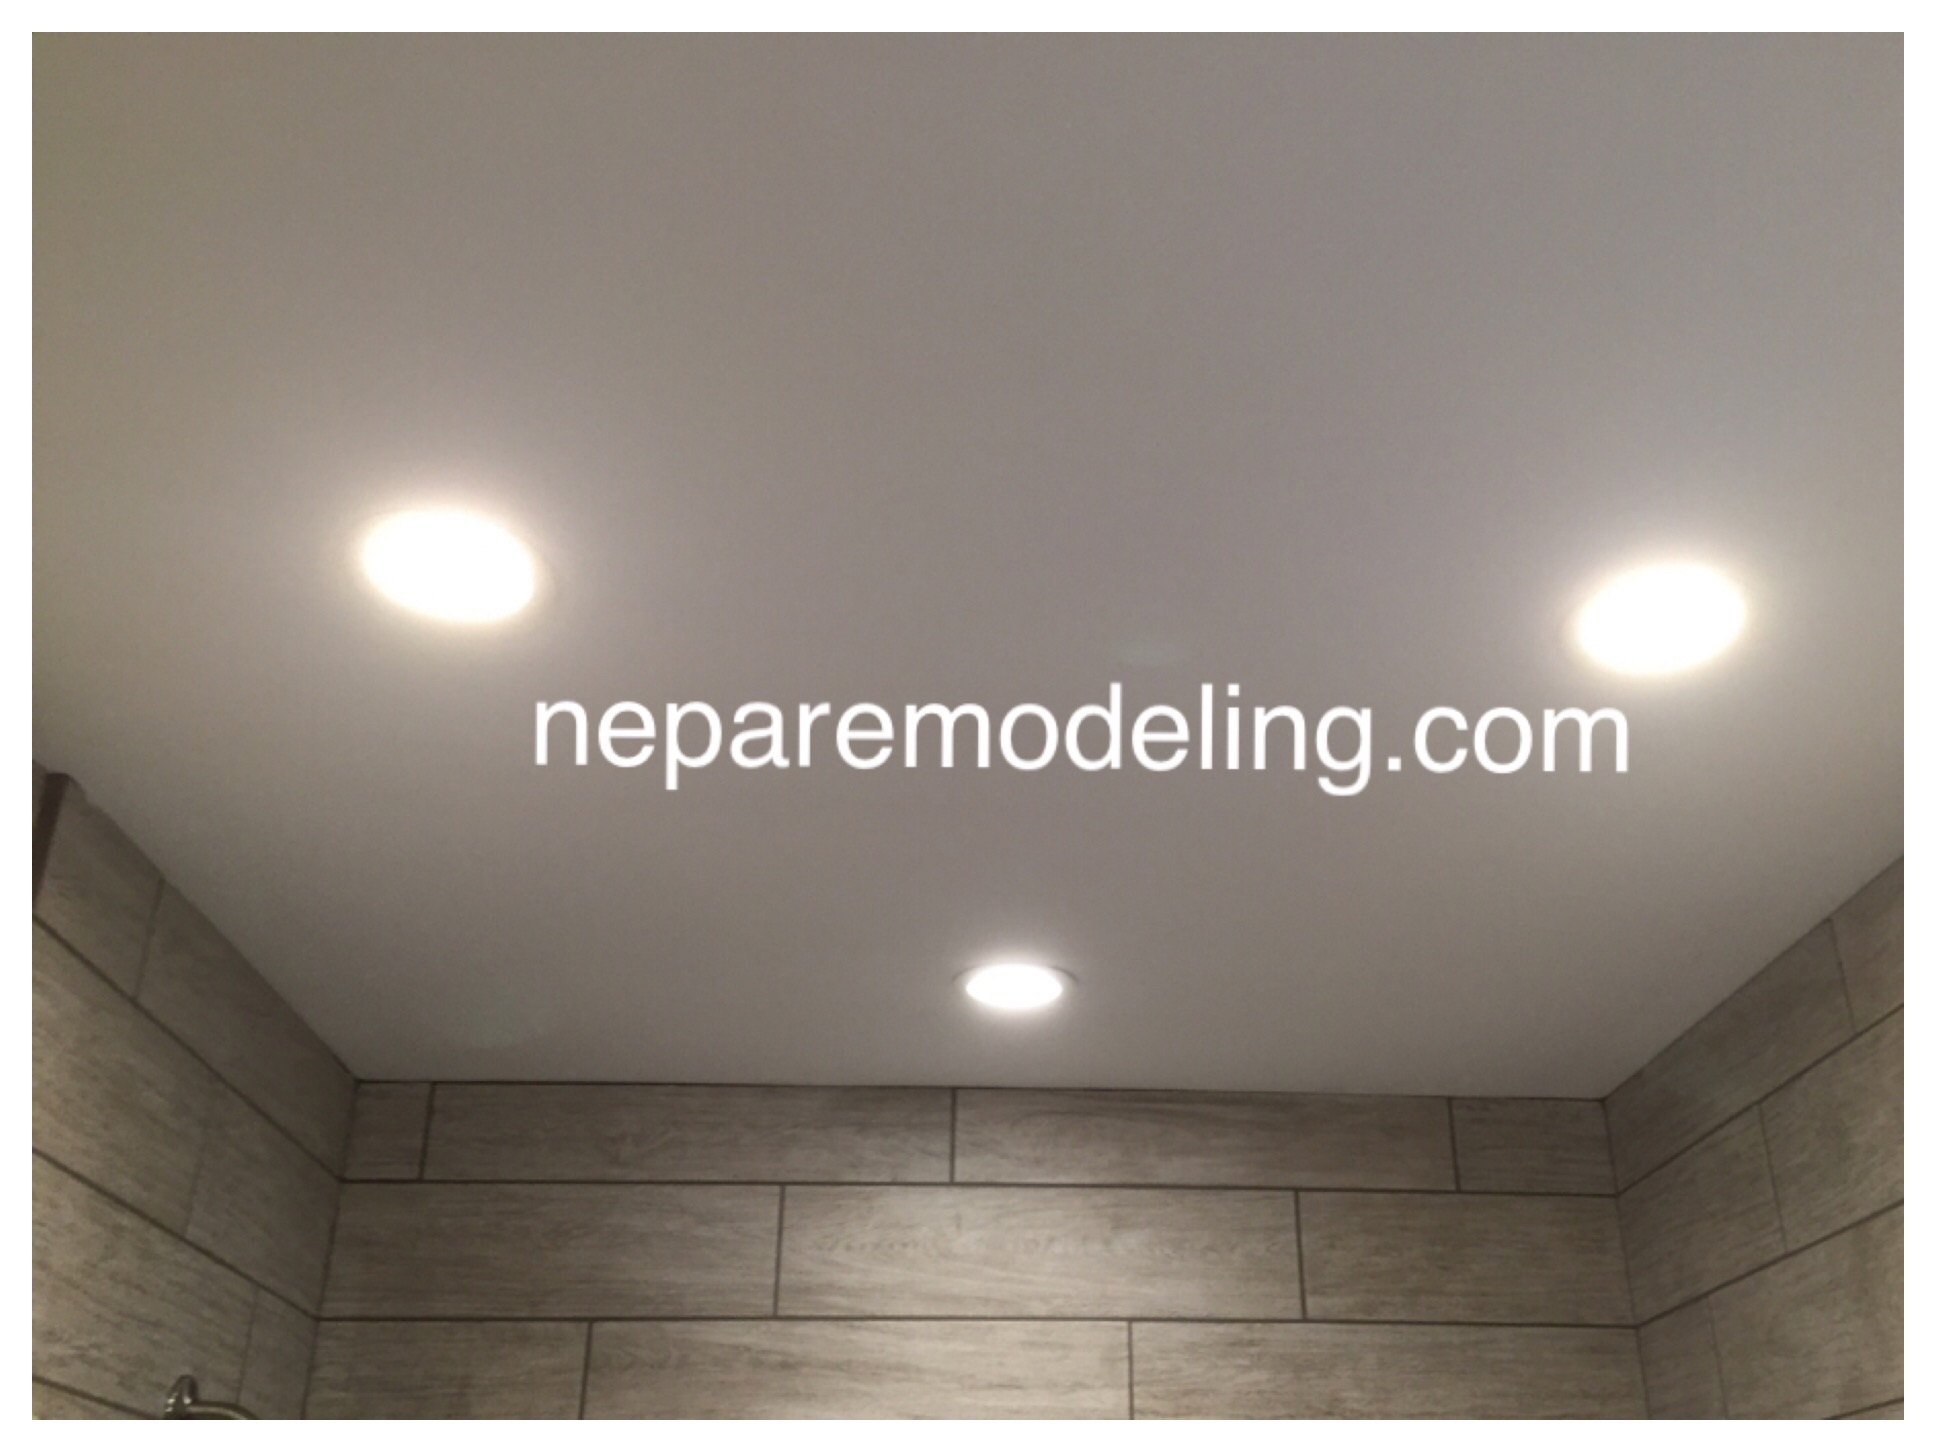 Recessed lighting to provide even light distribution throughout the room.